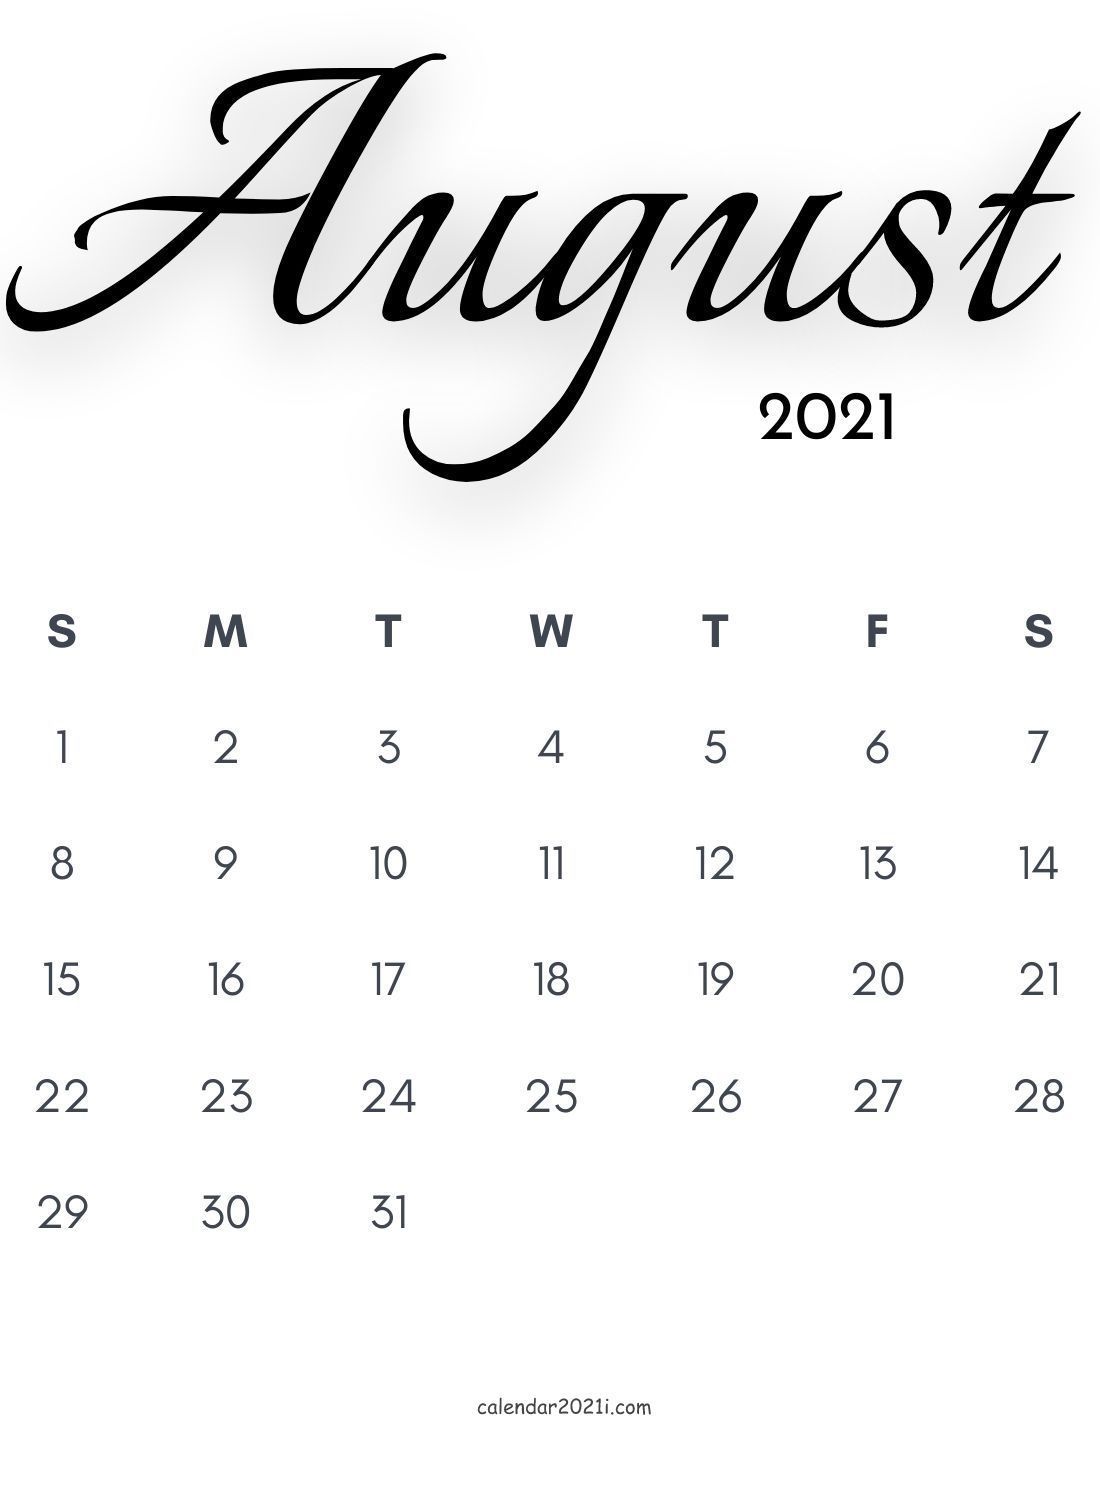 August 2021 Monthly Calendar August 2021 Calligraphy Calendar free download | Calligraphy